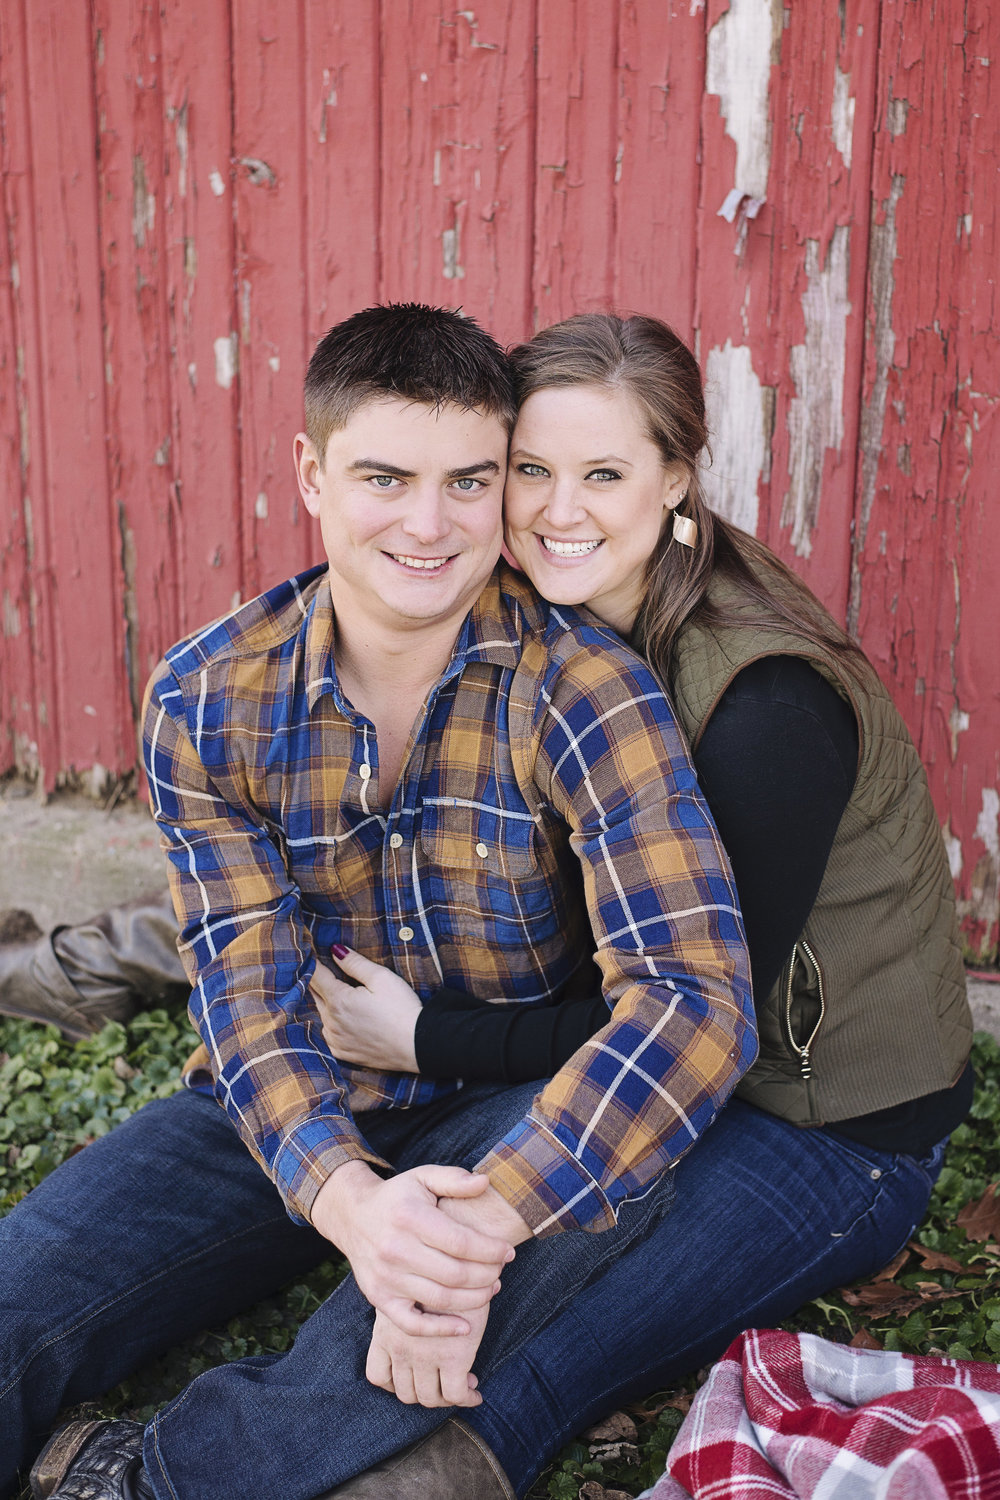 Seminole Valley Farm Engagement Session | Iowa Wedding Photographer